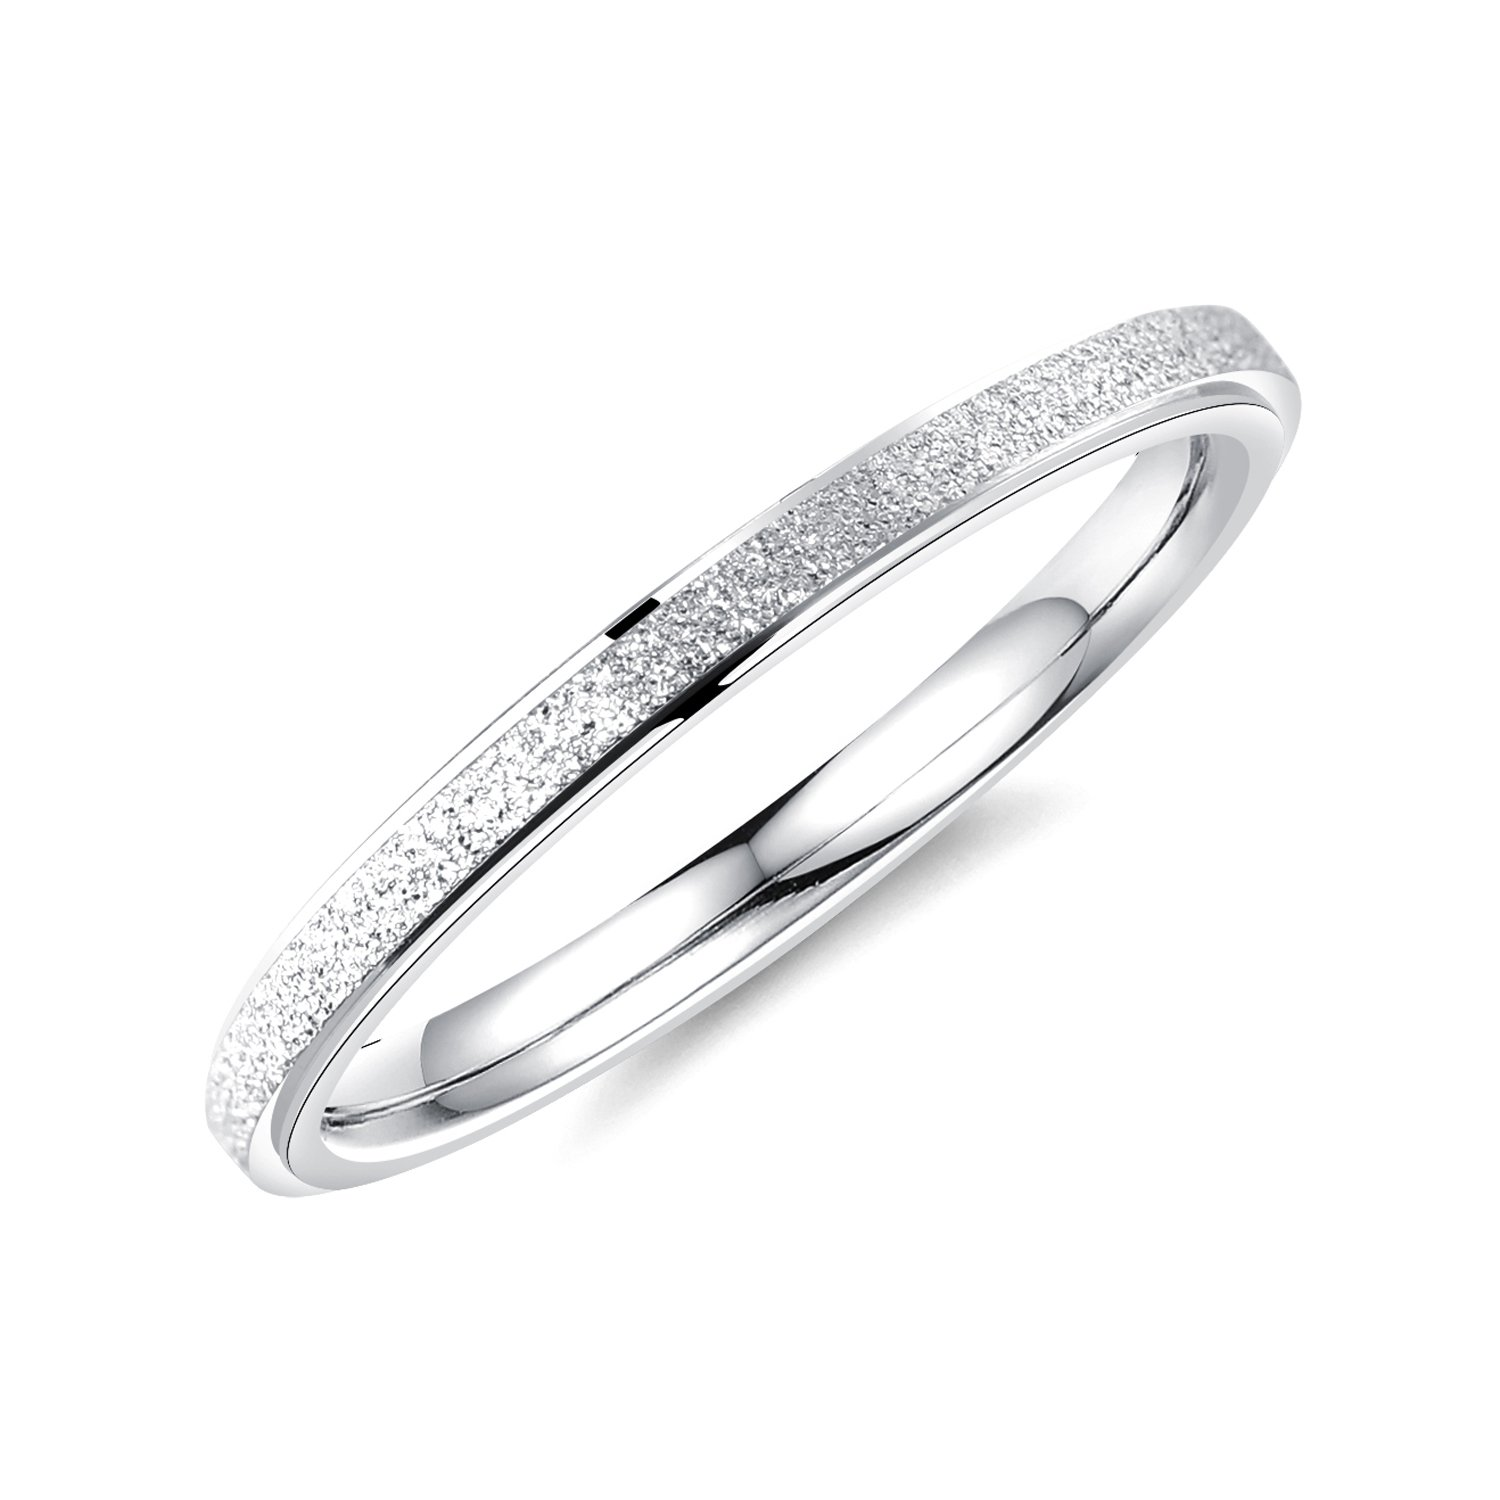 ALEXTINA Women's Stainless Steel 2MM Thin Stackable Midi Rings Silver Wedding Bands Size 9